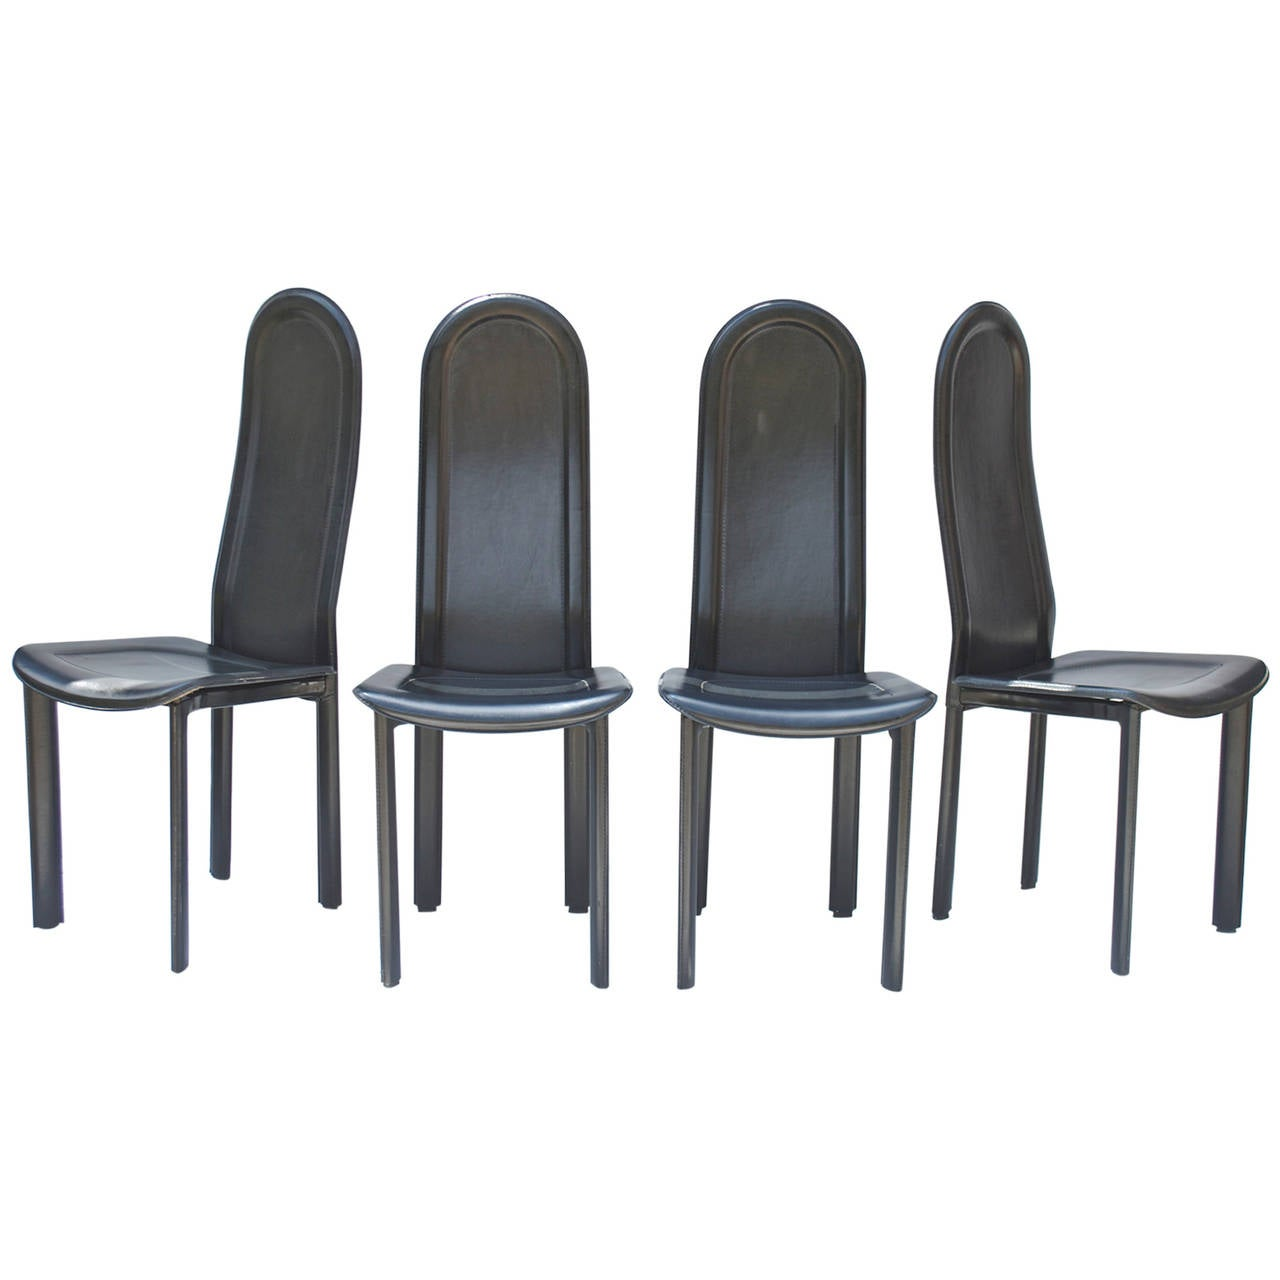 Black Leather Dining Chairs Black Leather Dining Chairs By Artedi U K For Sale At 1stdibs